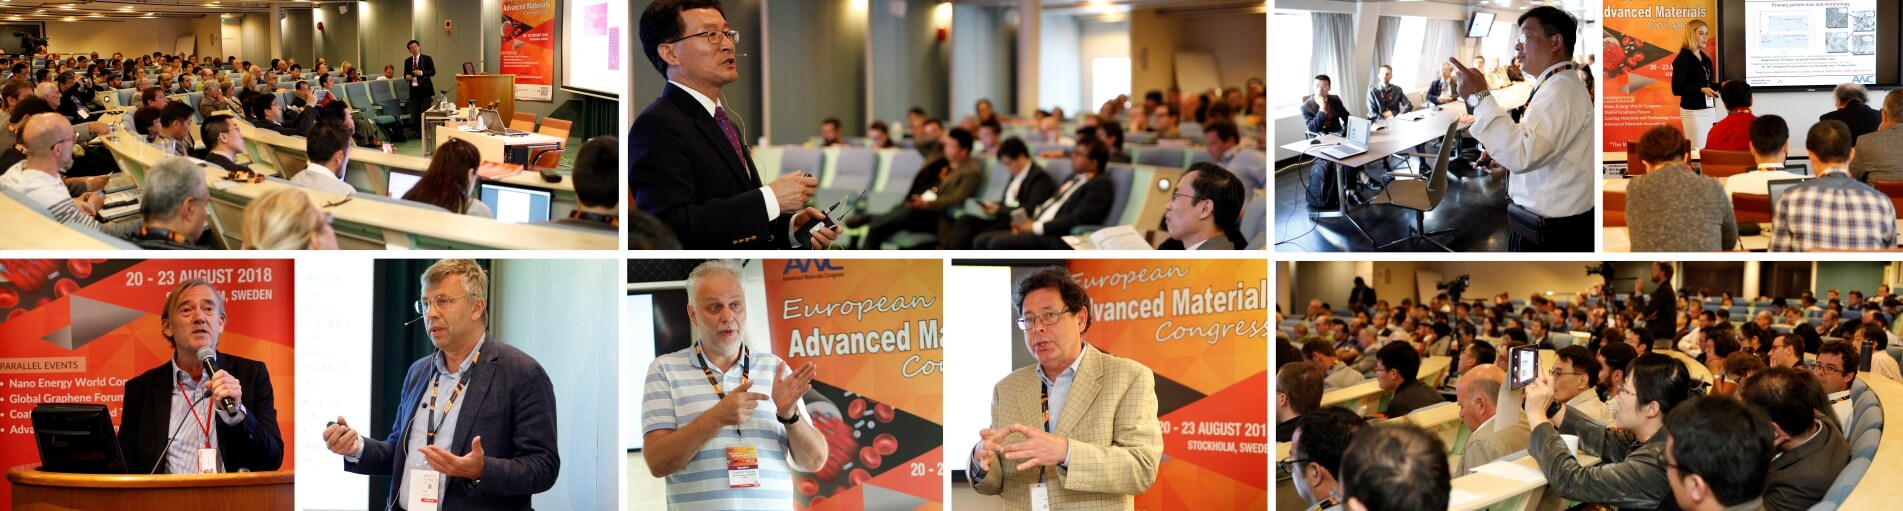 Delegates speaking about european advanced materials congress | IAAM